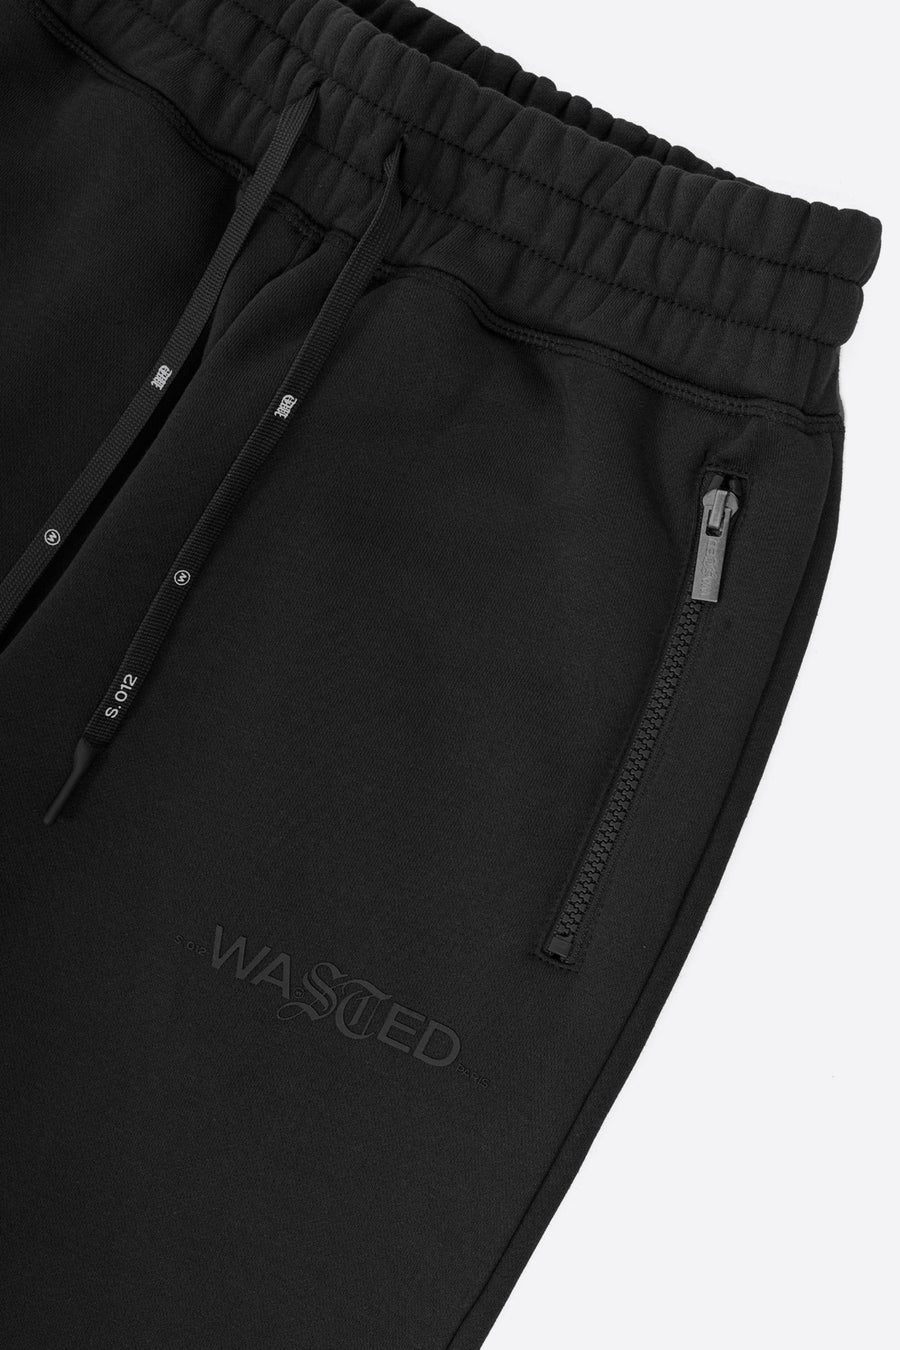 Jogging Essentiel Noir - WASTED PARIS